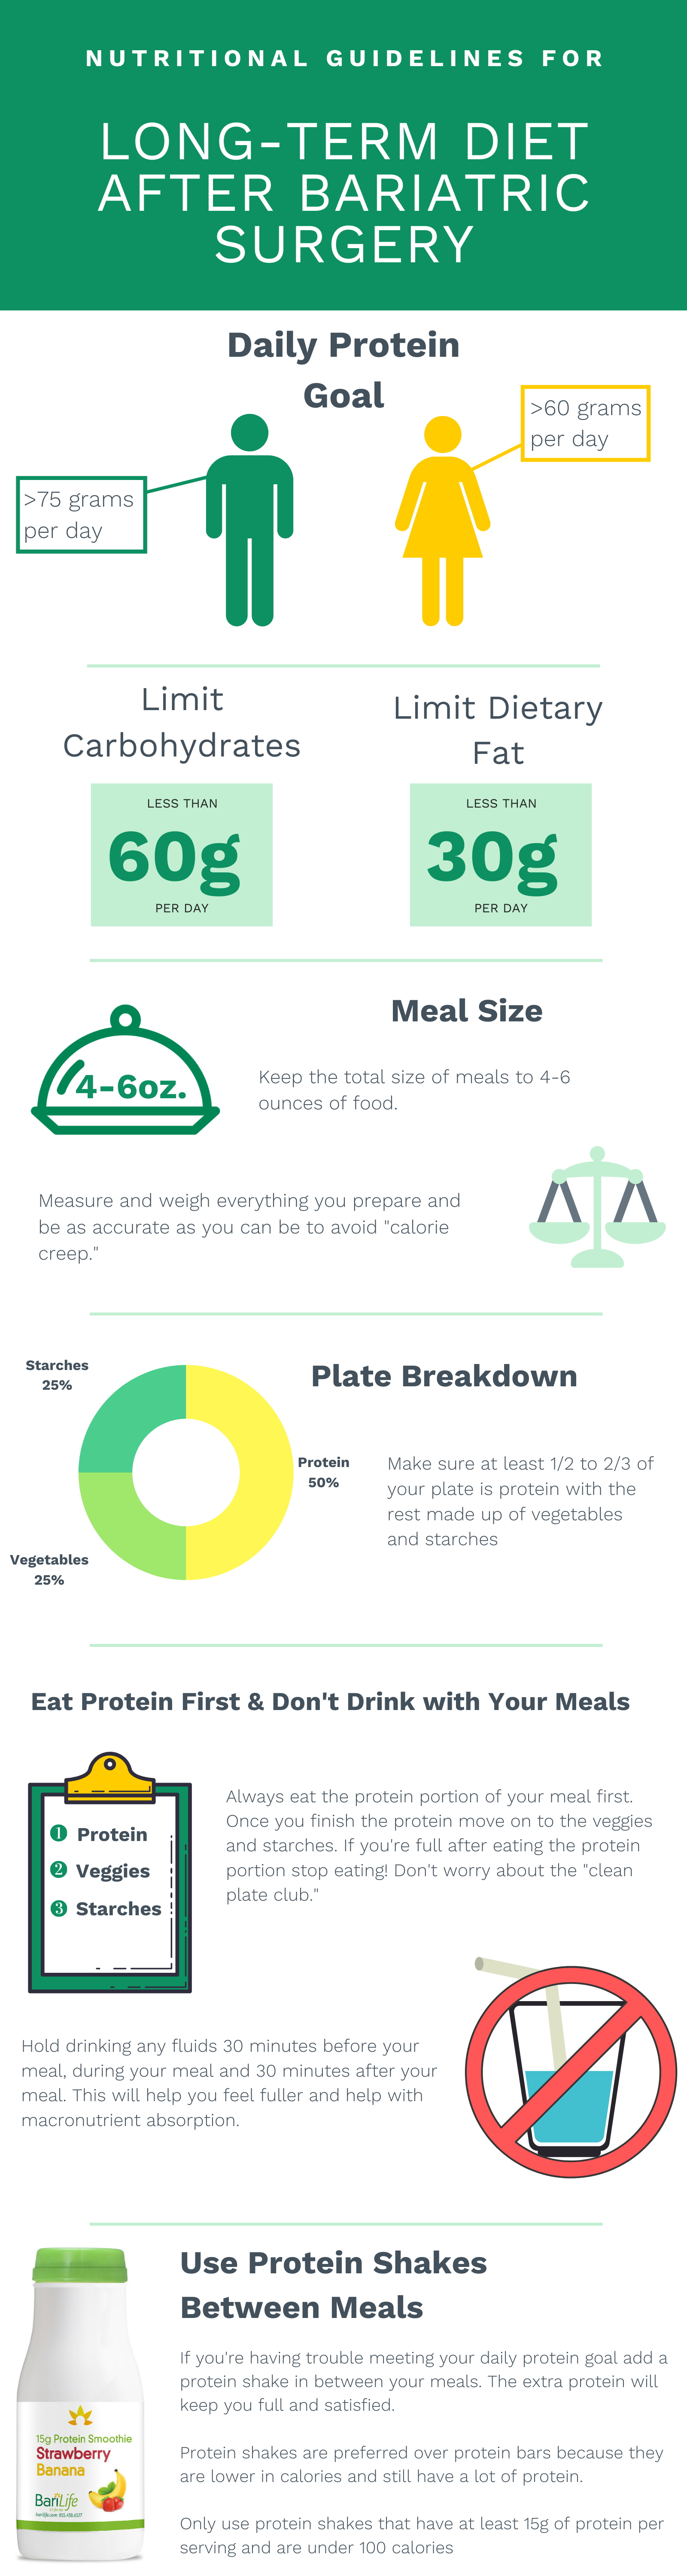 what is a bariatric diet?